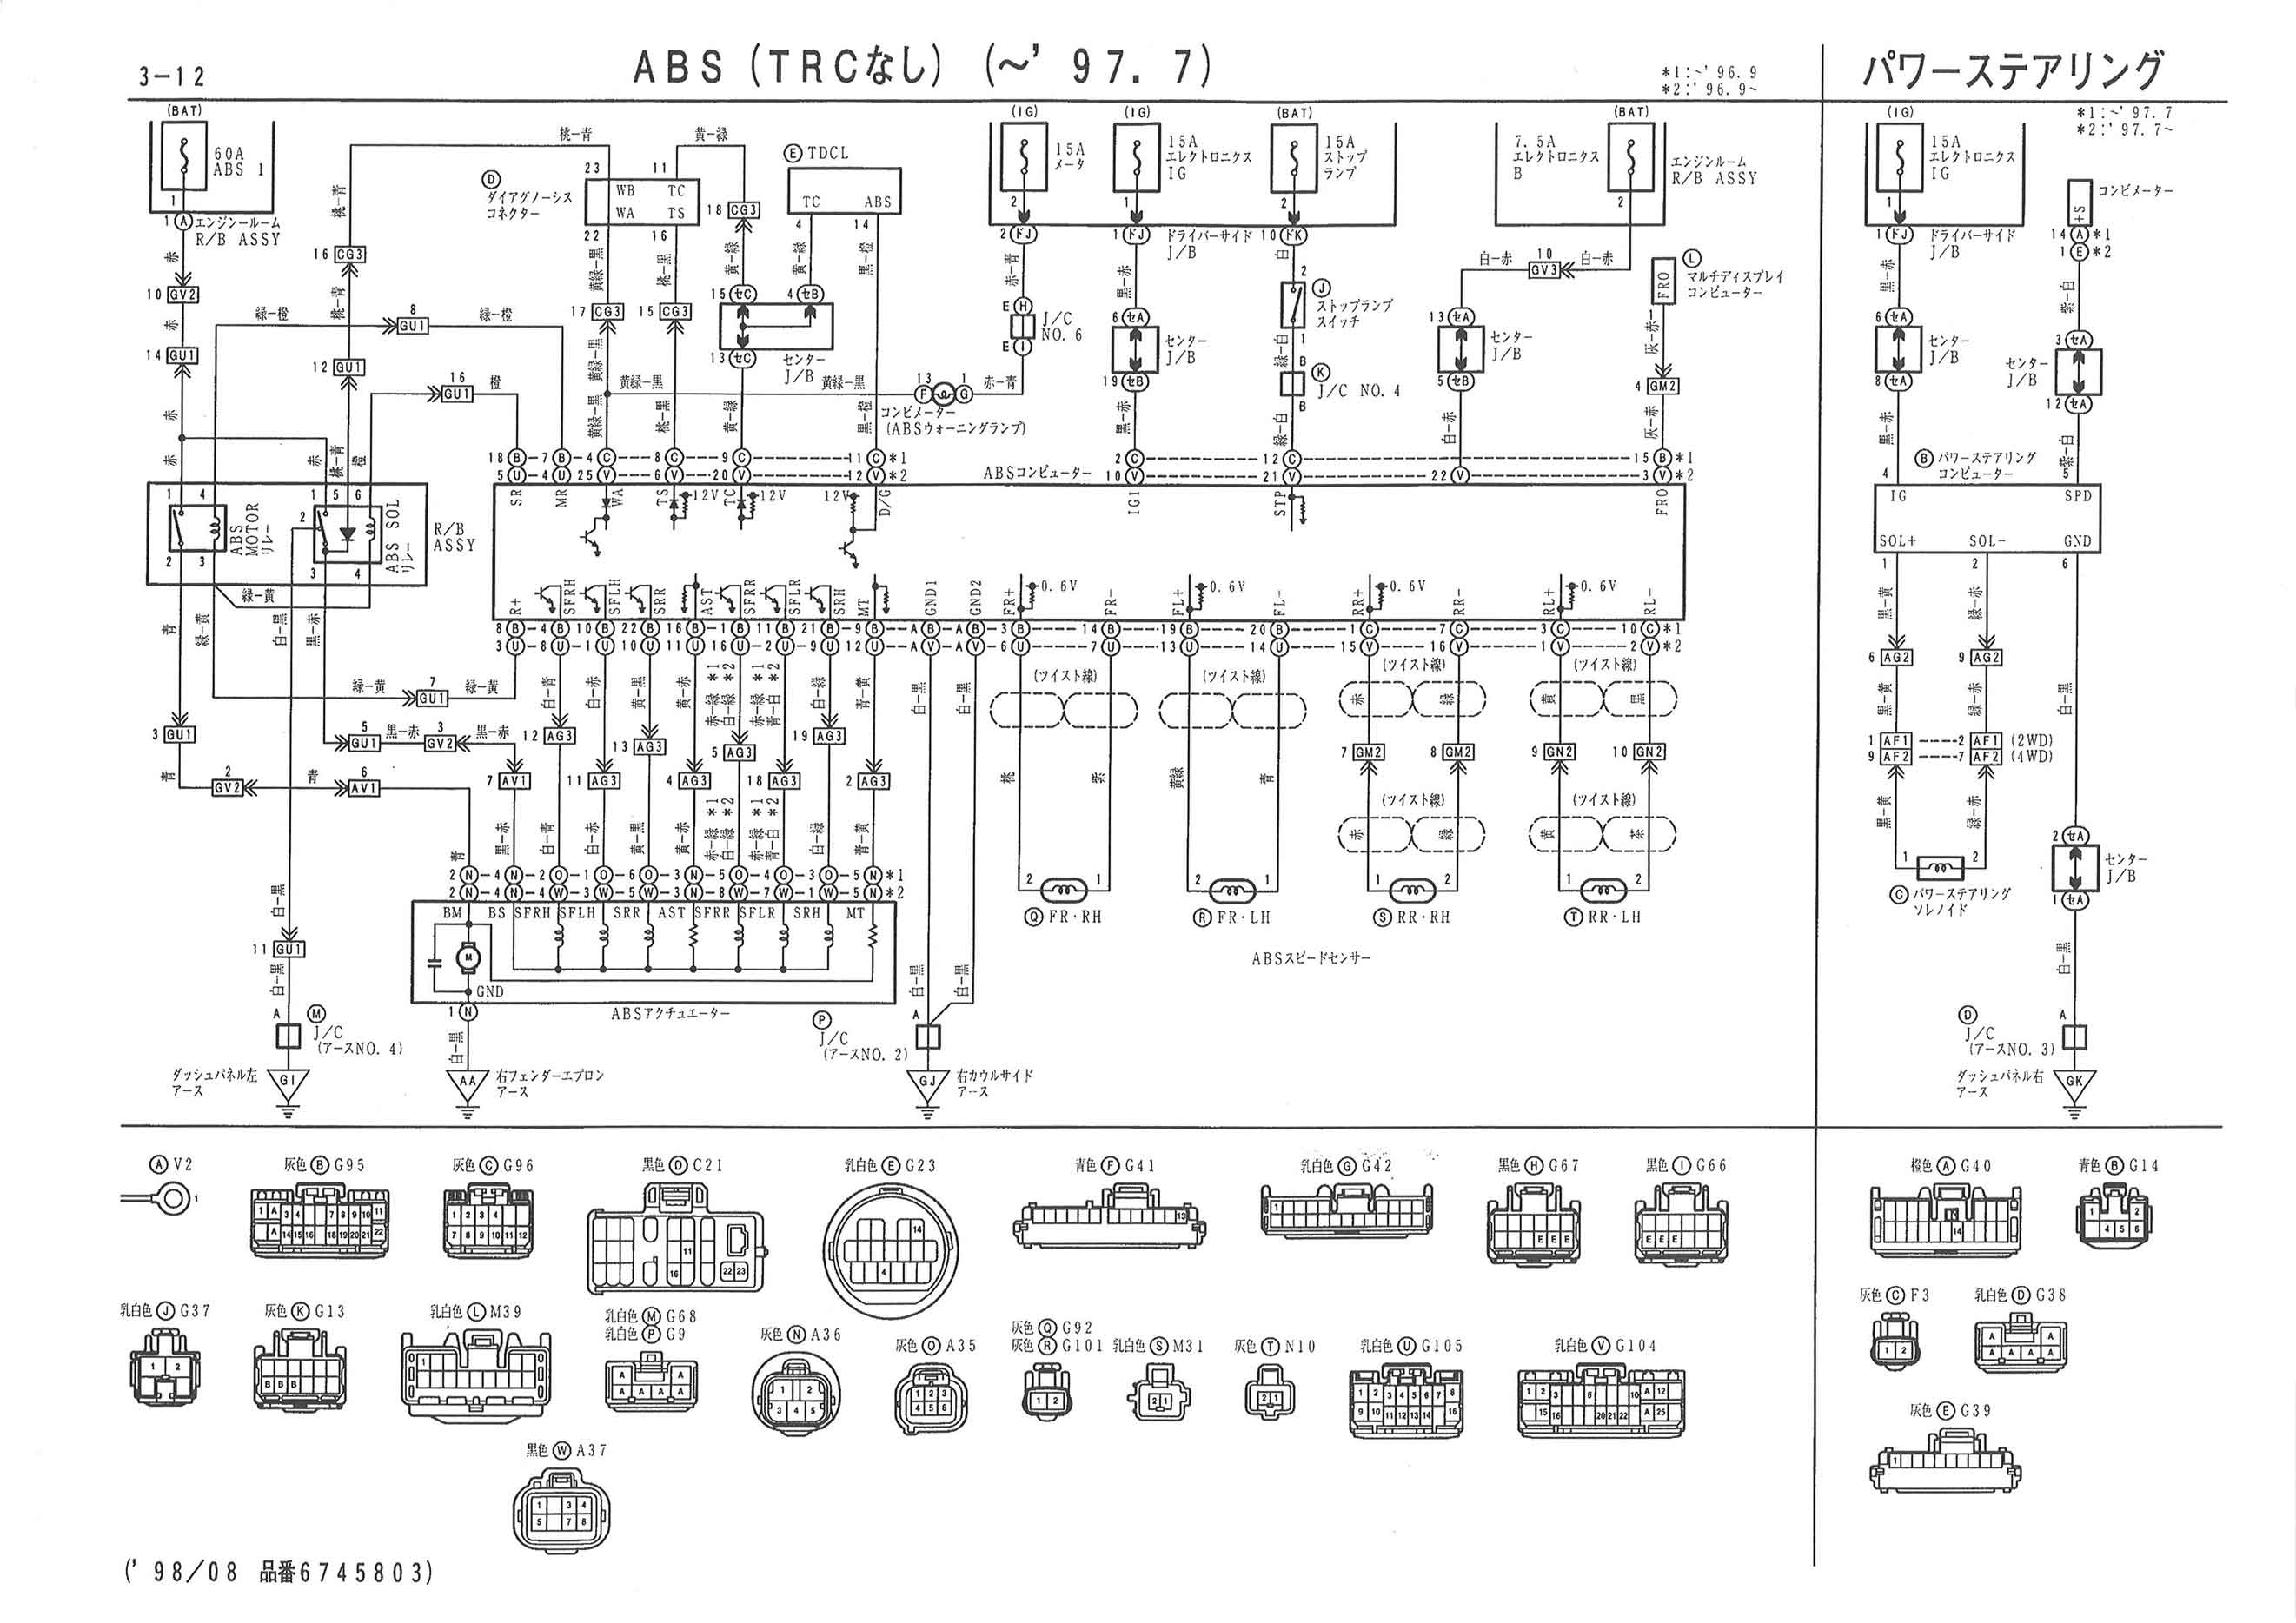 2JZ GE VVT i 9 ge vvt i 9 2jz ge wiring diagram pdf at edmiracle.co